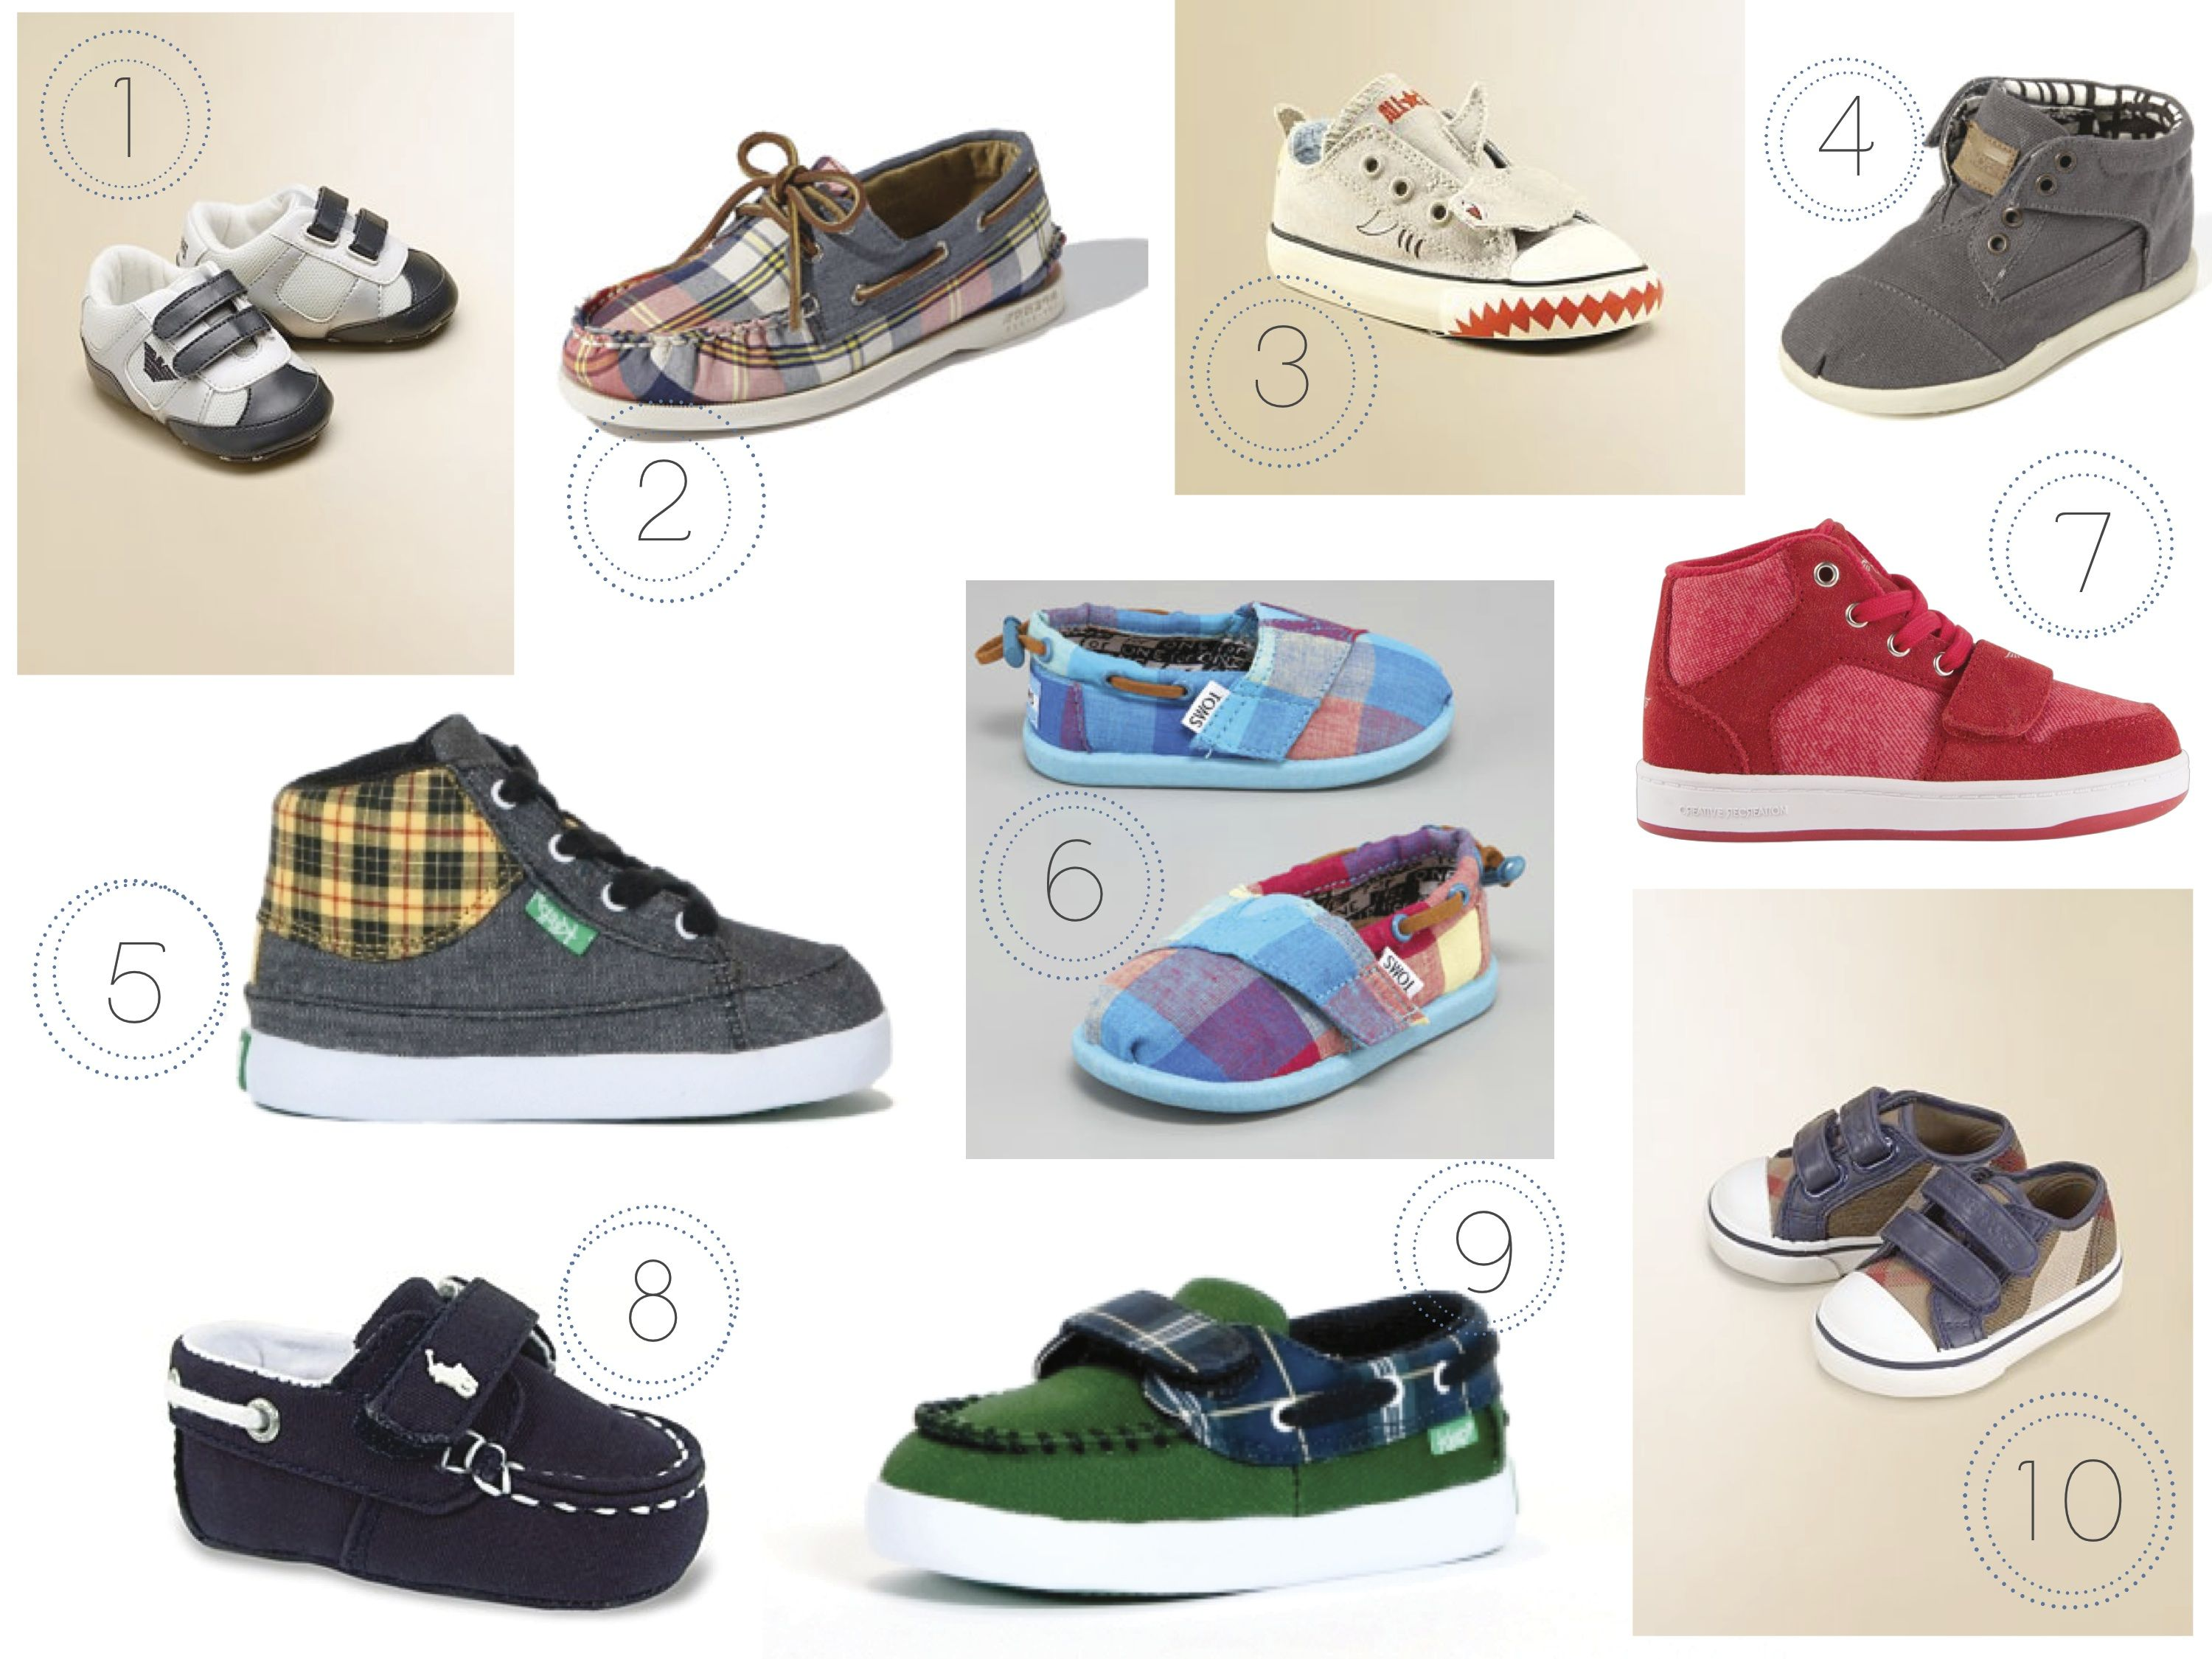 17 Best images about For Kids Shoes on Pinterest | Shoe size chart ...